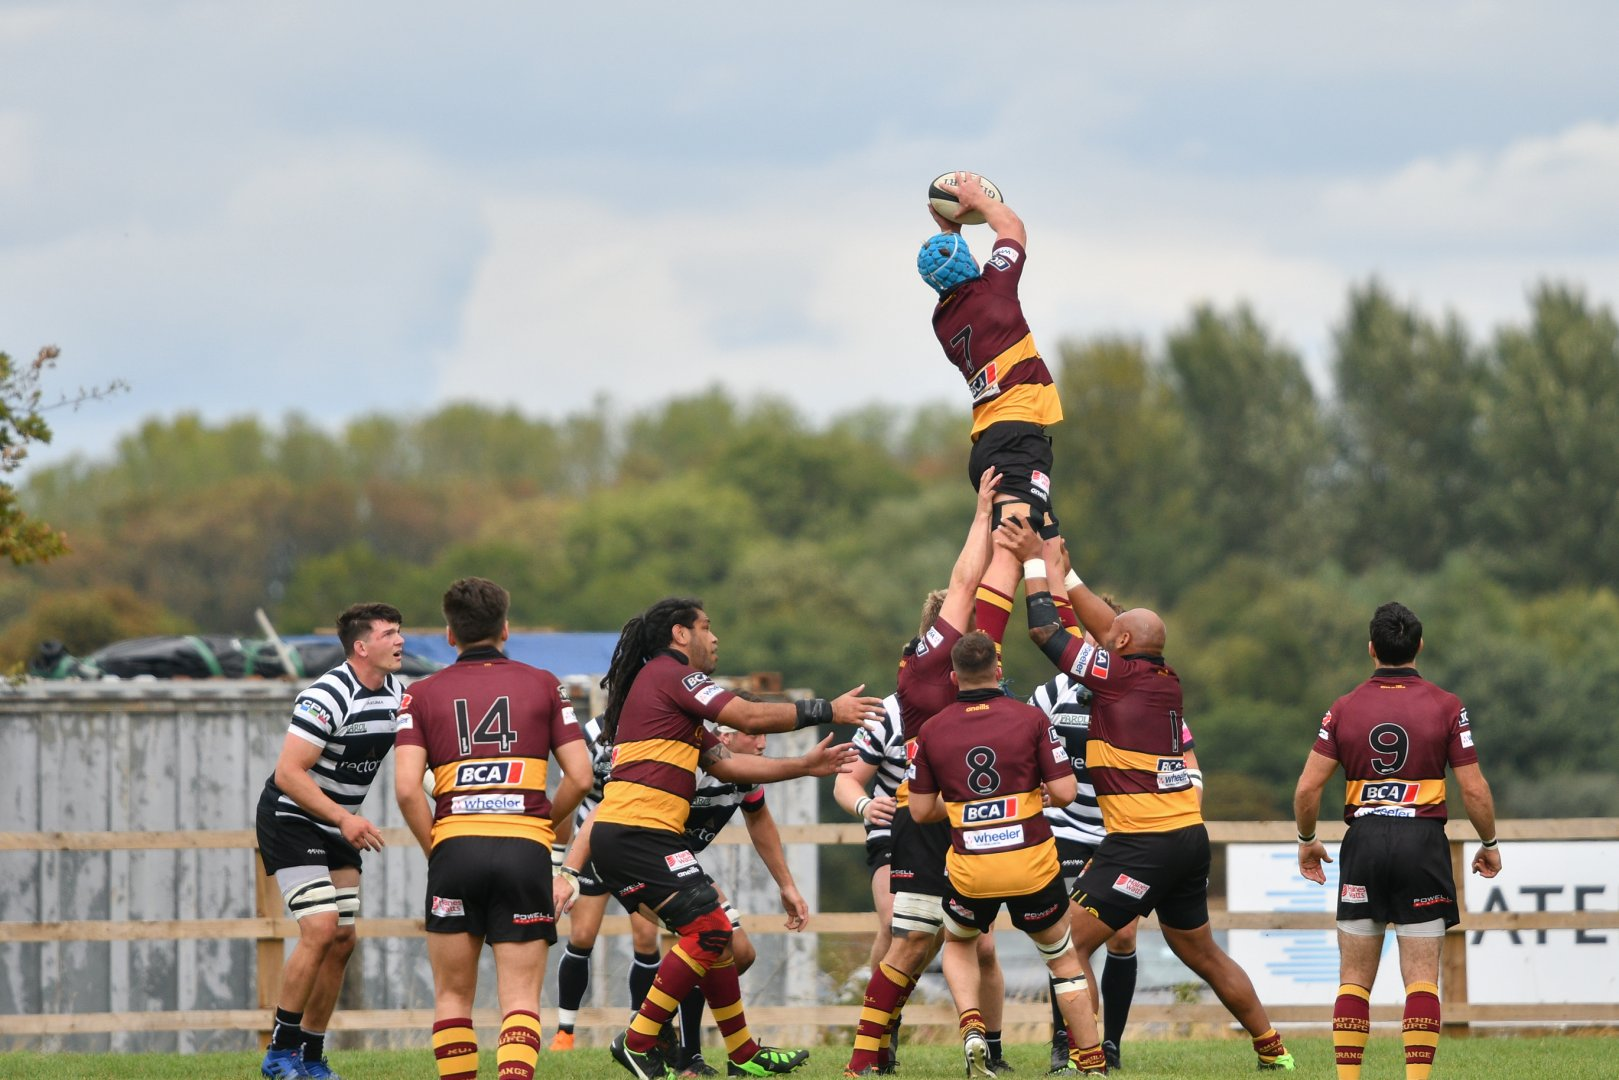 Joe Bercis takes a lineout at Chinnor